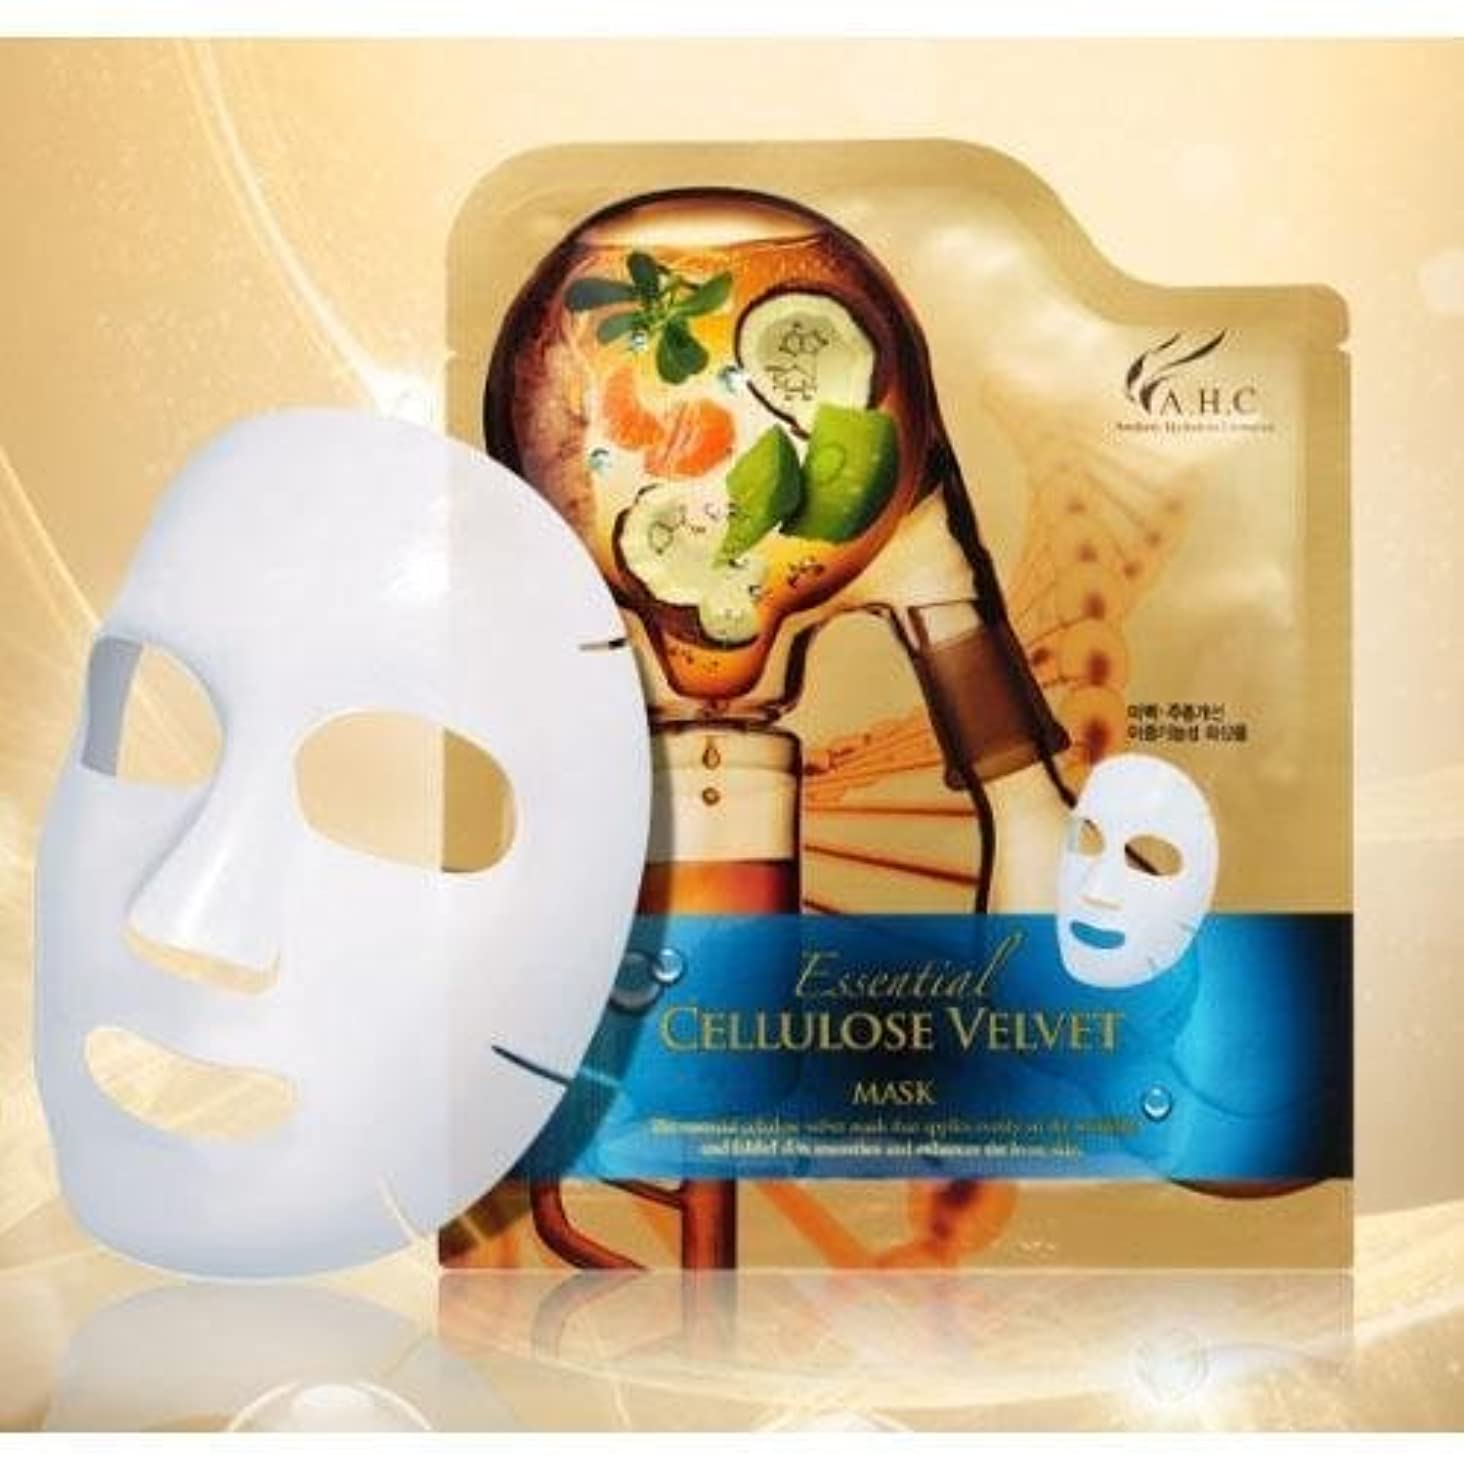 補充汚物衣類A.H.C Essencial Cellulose Velvet Mask (30g*1EA) [Korean Import]